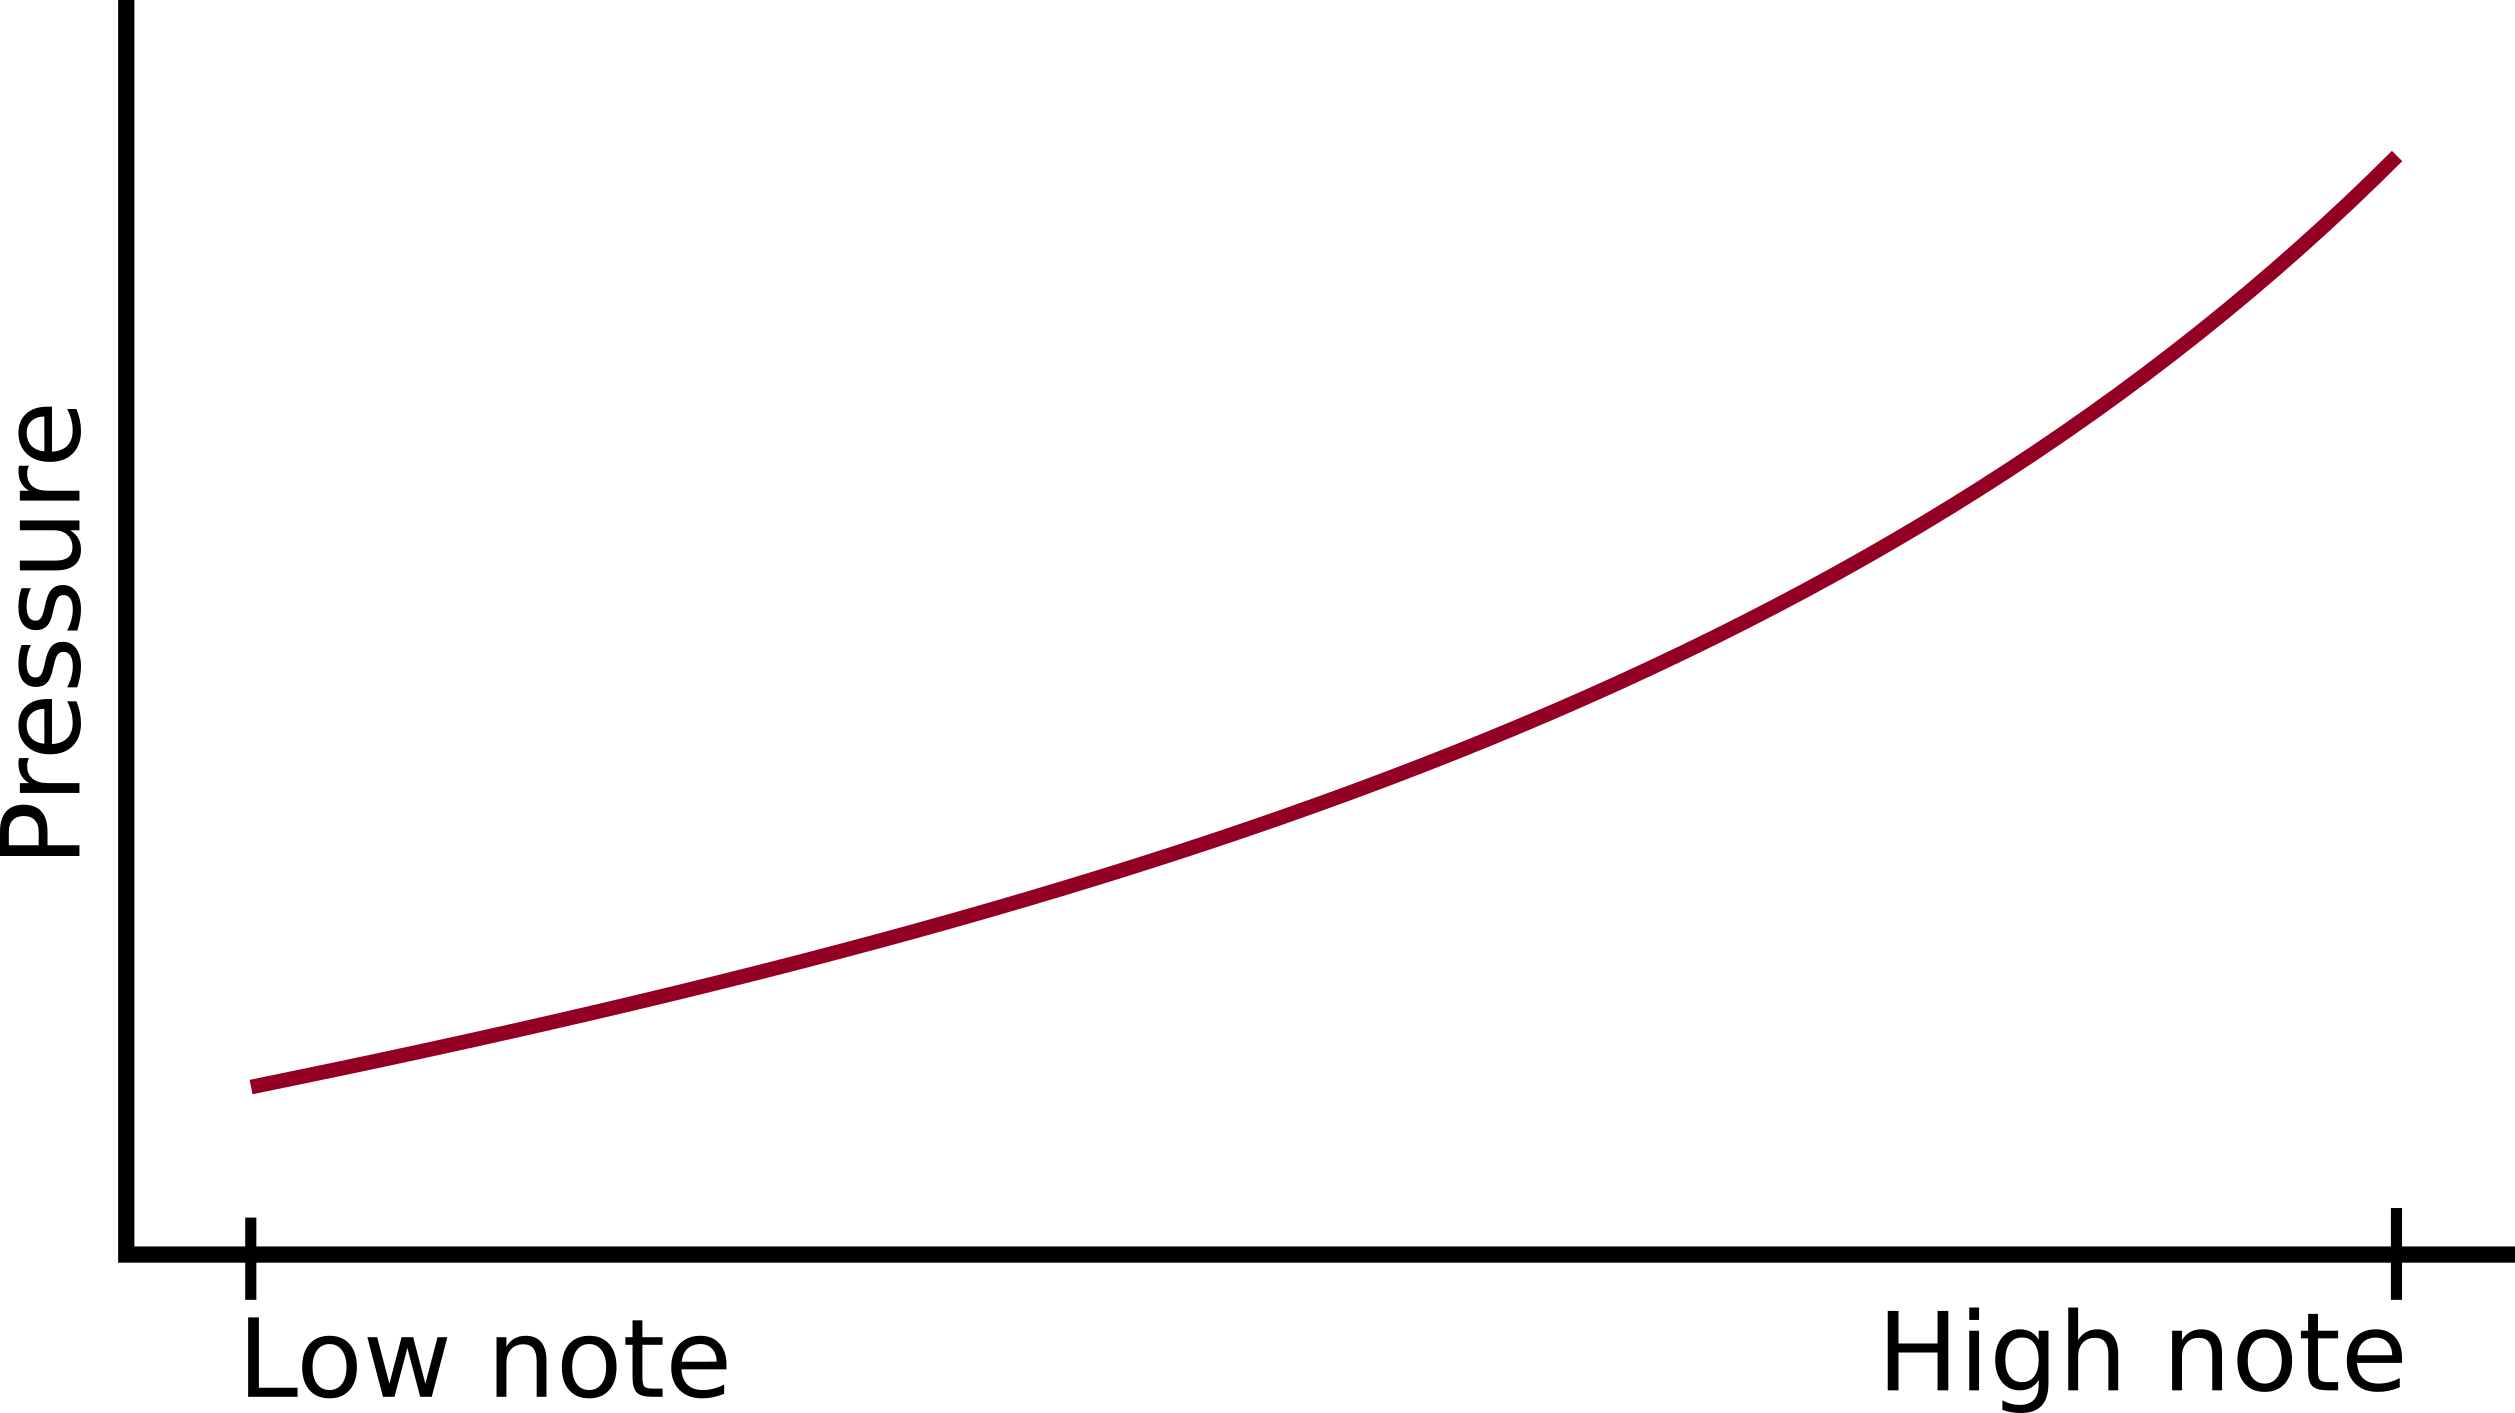 A graph visualising the breath curve of a well tuned single chamber ocarina. Pressure increases smoothly from the low note to the high note